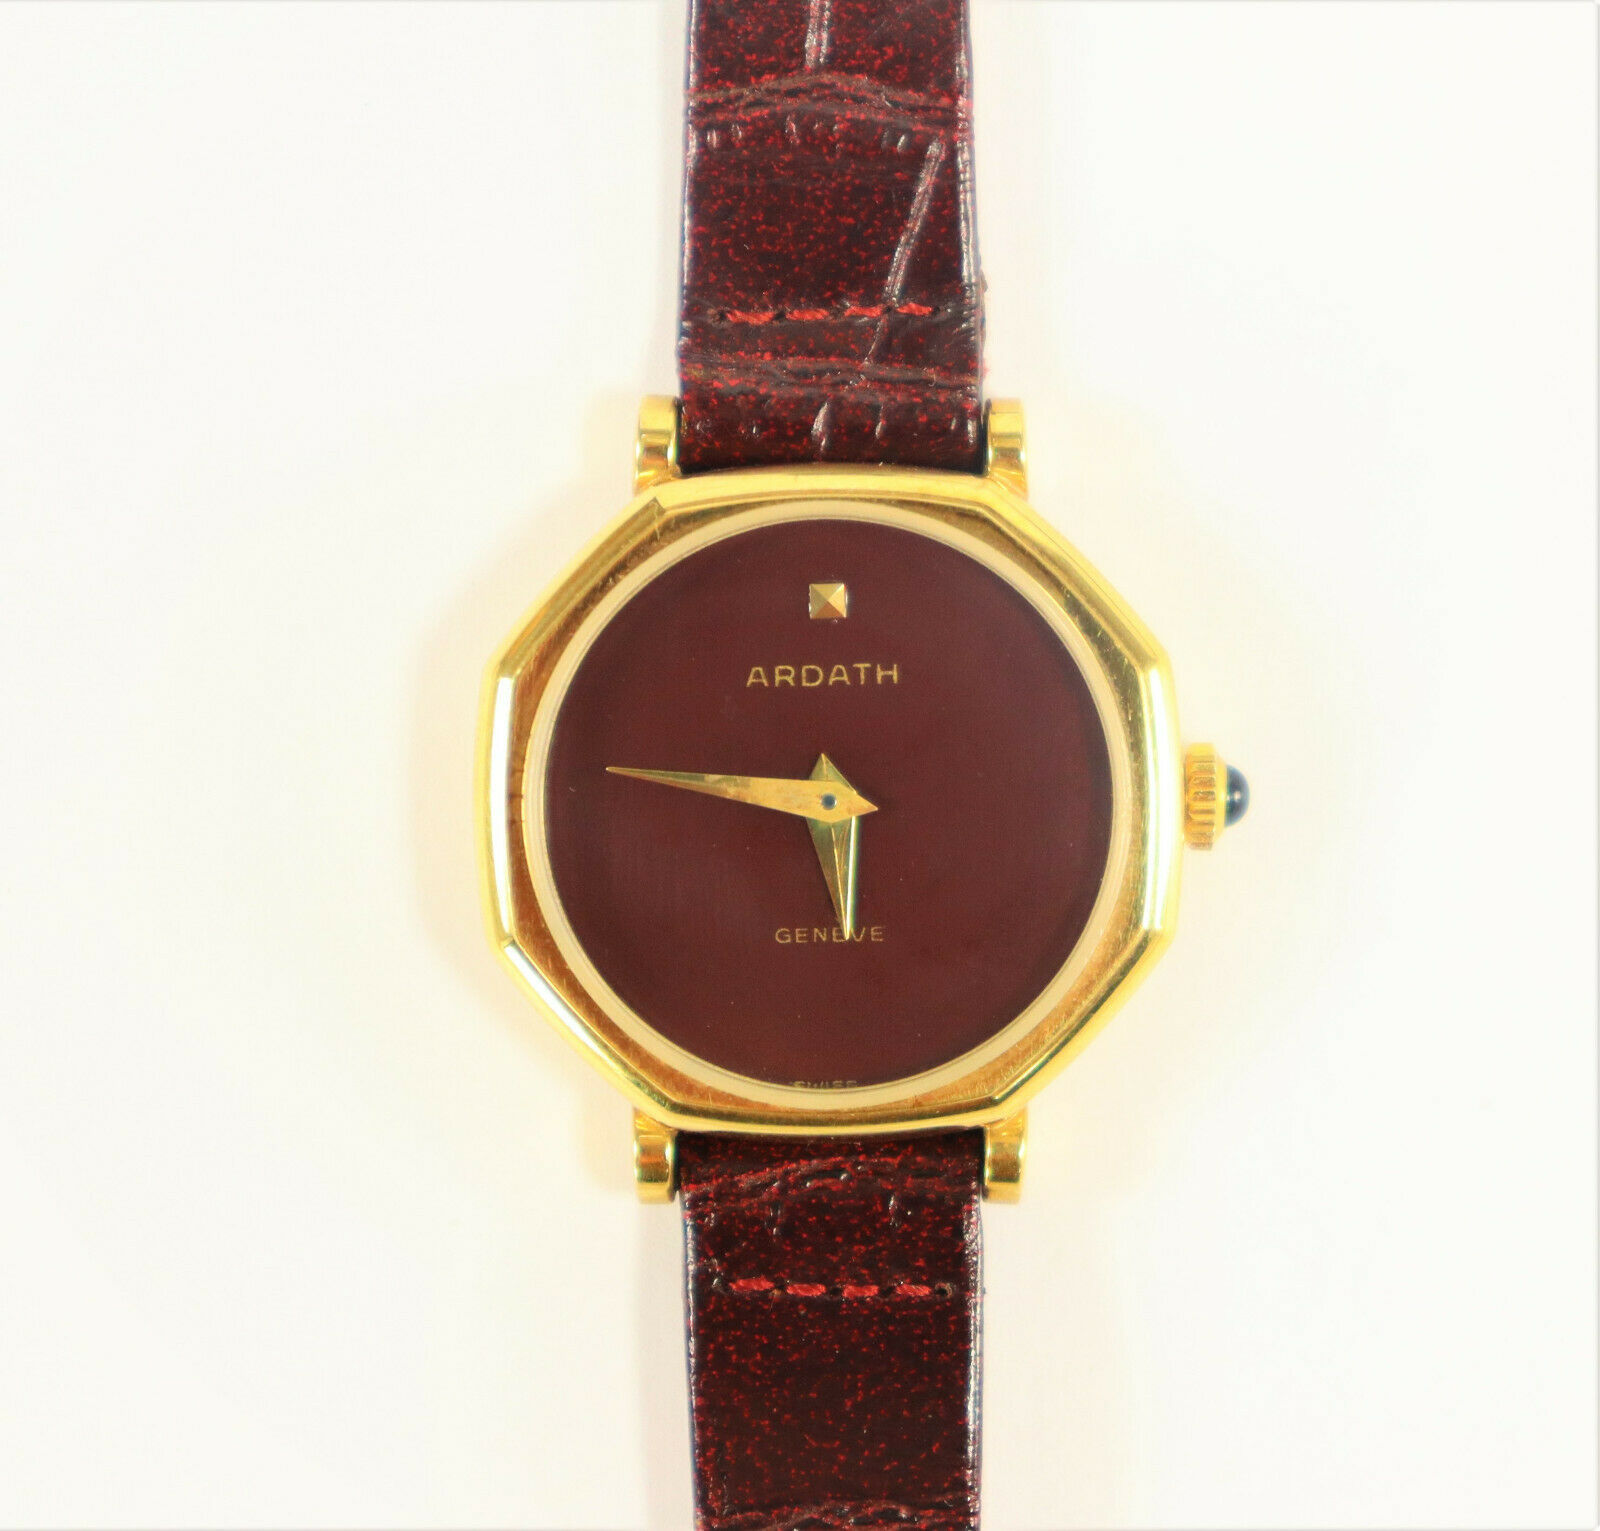 Primary image for Ardath Ladies Swiss Made Watch Gold Plated Burgundy 1980's Vintage Brand New